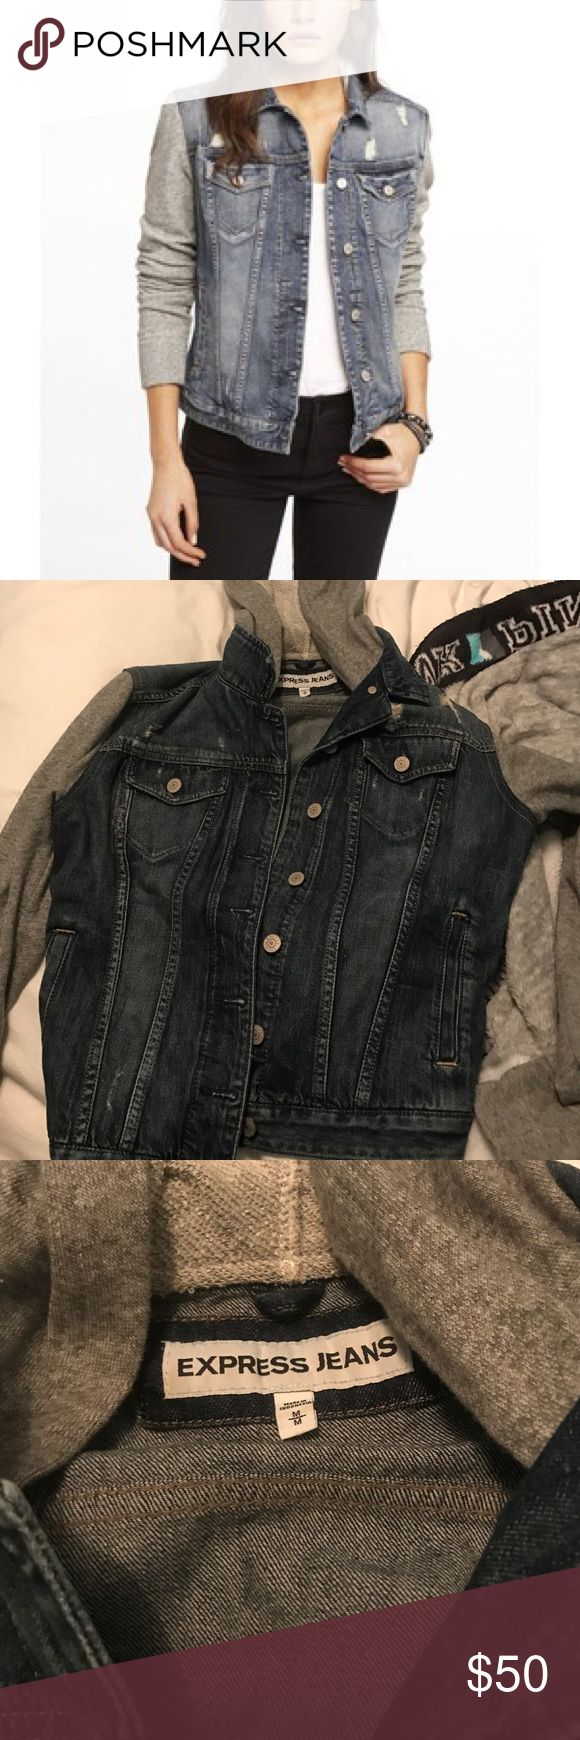 Express Jean Jacket Hoodie - NWOT I bought this when i was pregnant assuming i would wear it. I cut the tags off and it's been in my closet since.    ✔ Clean ✔Smoke Free Home ✖TRADES ✖PAYPAL Express Jackets & Coats Jean Jackets